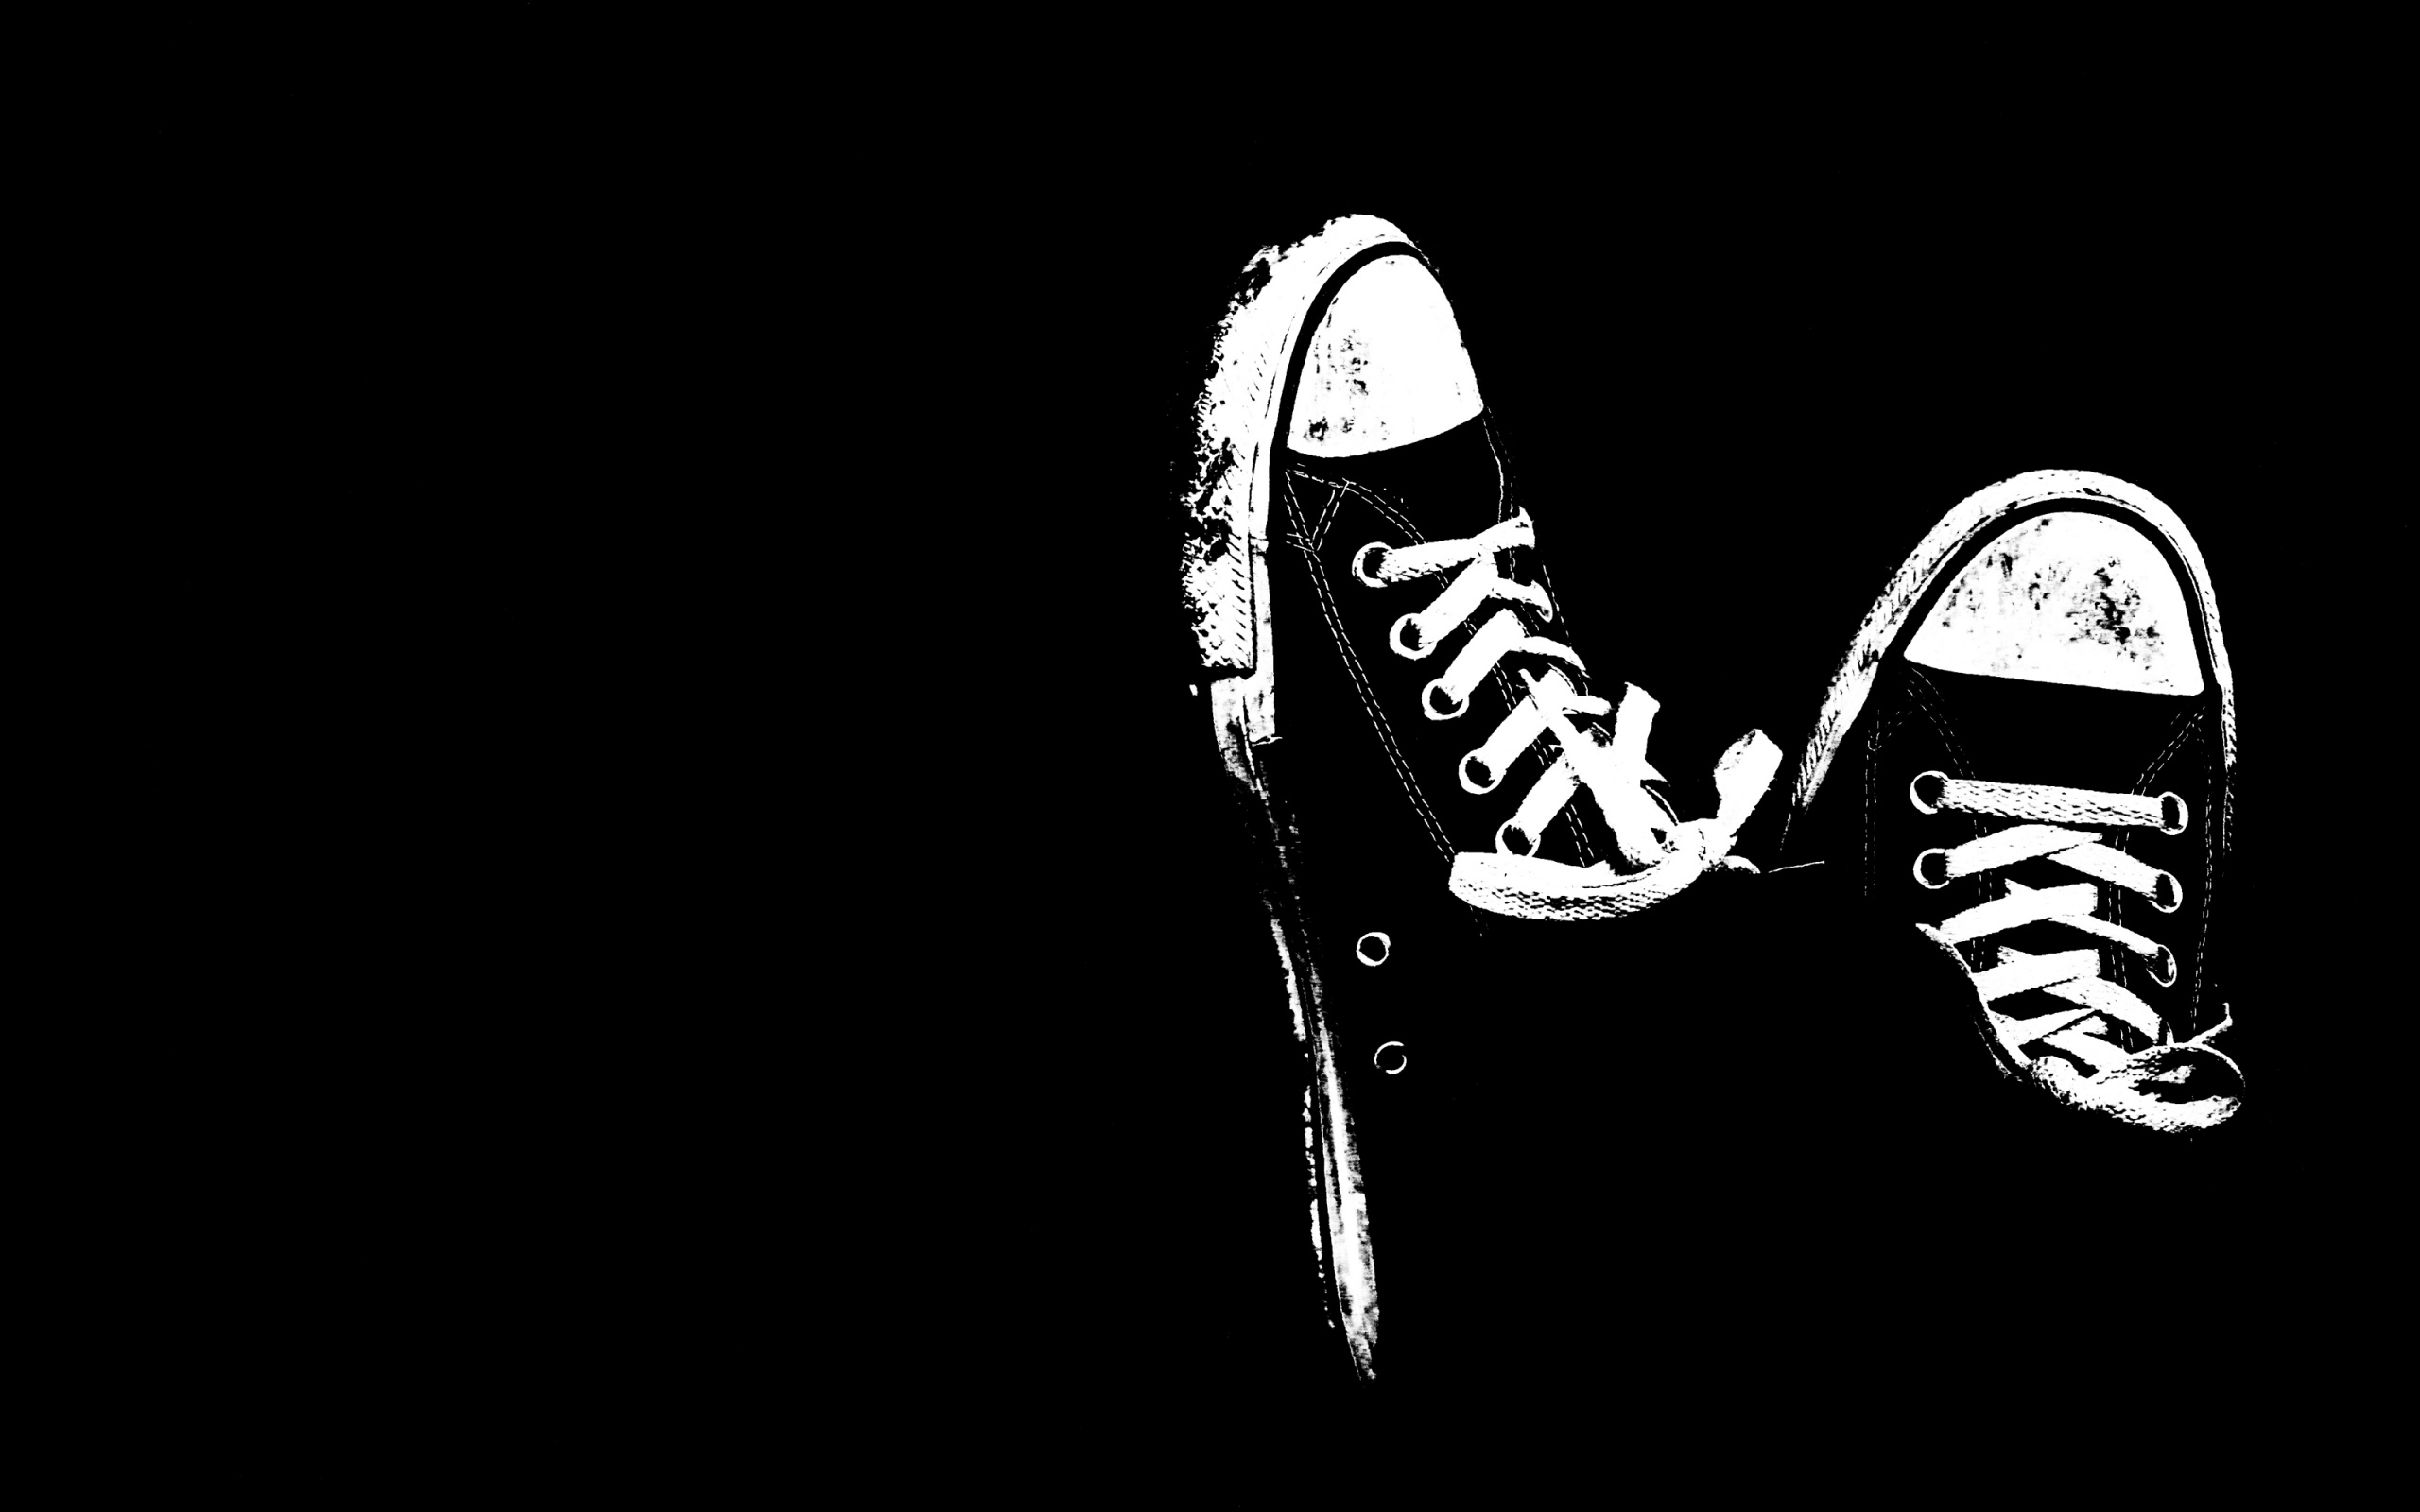 1366x768 Shoes Shnurki Black 1366x768 Resolution Wallpaper Hd Vector 4k Wallpapers Images Photos And Background